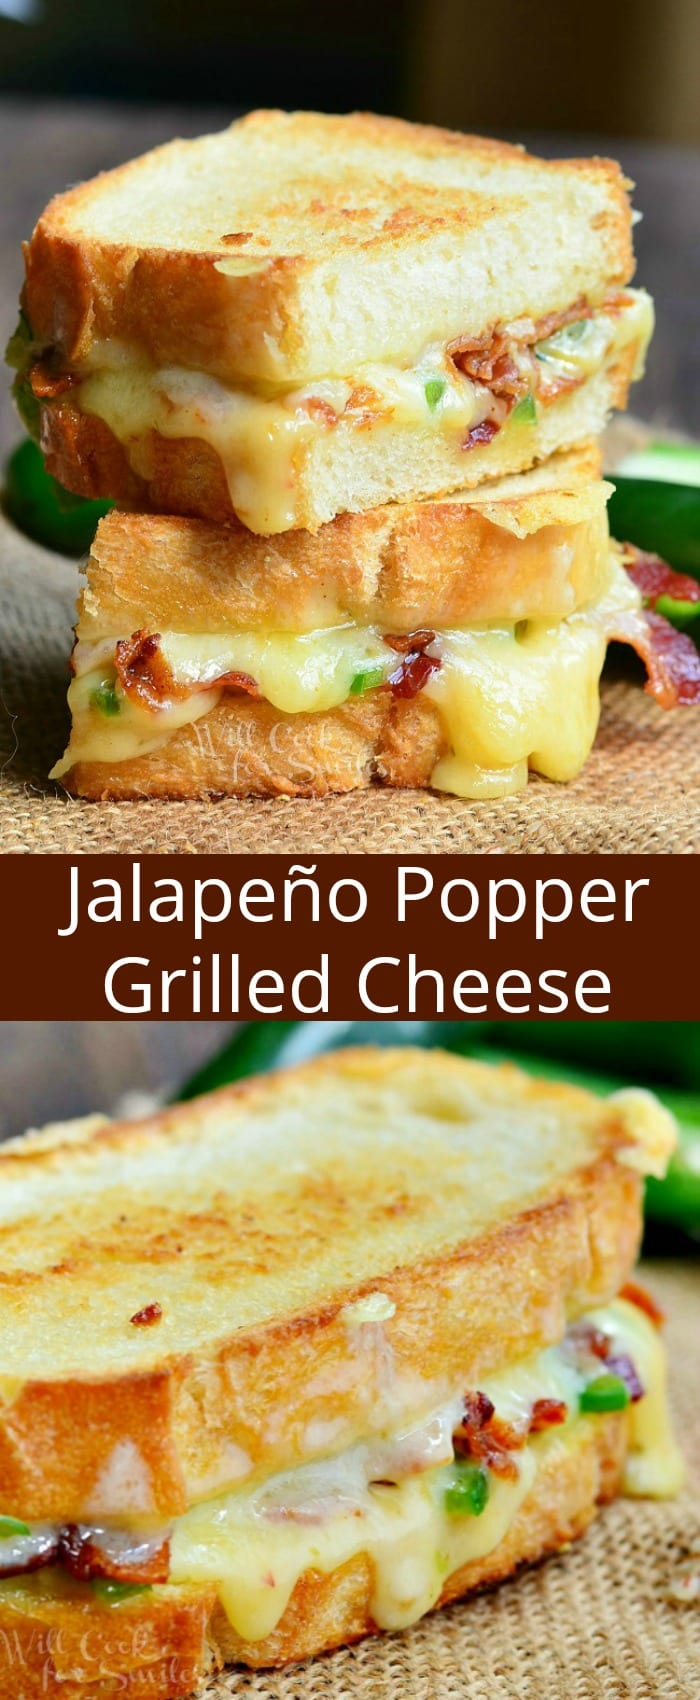 Jalapeno Popper Grilled Cheese. Amazing, ooey-gooey grilled cheese loaded with zesty cheese, jalapenos, and crispy bacon. This quick and easy sandwich will knock your sock off. #sandwich #grilledcheese #jalepenopopper #bacon #lunch #cheesy